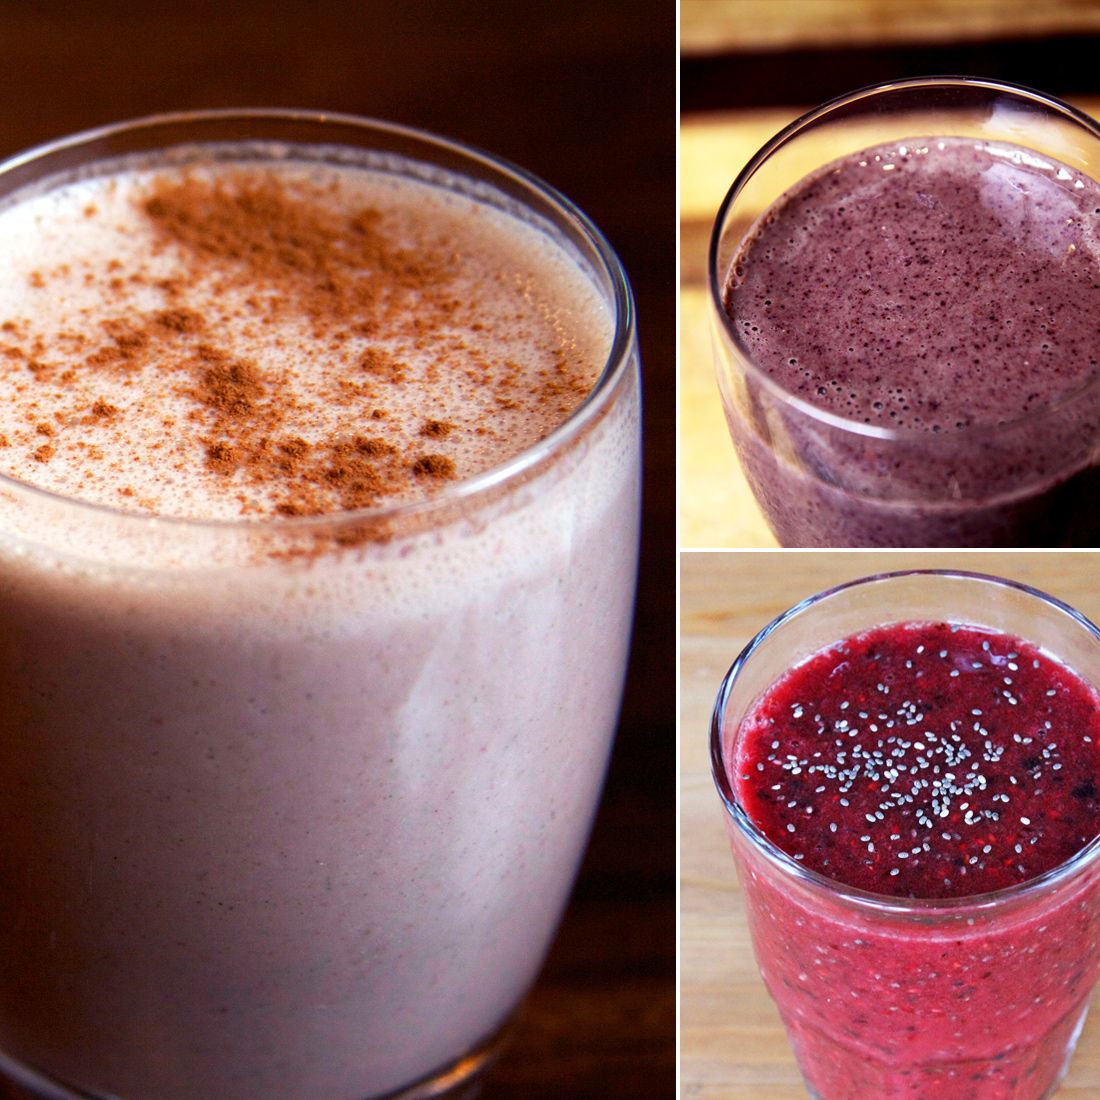 Breakfast Time! 7 Days of Smoothies